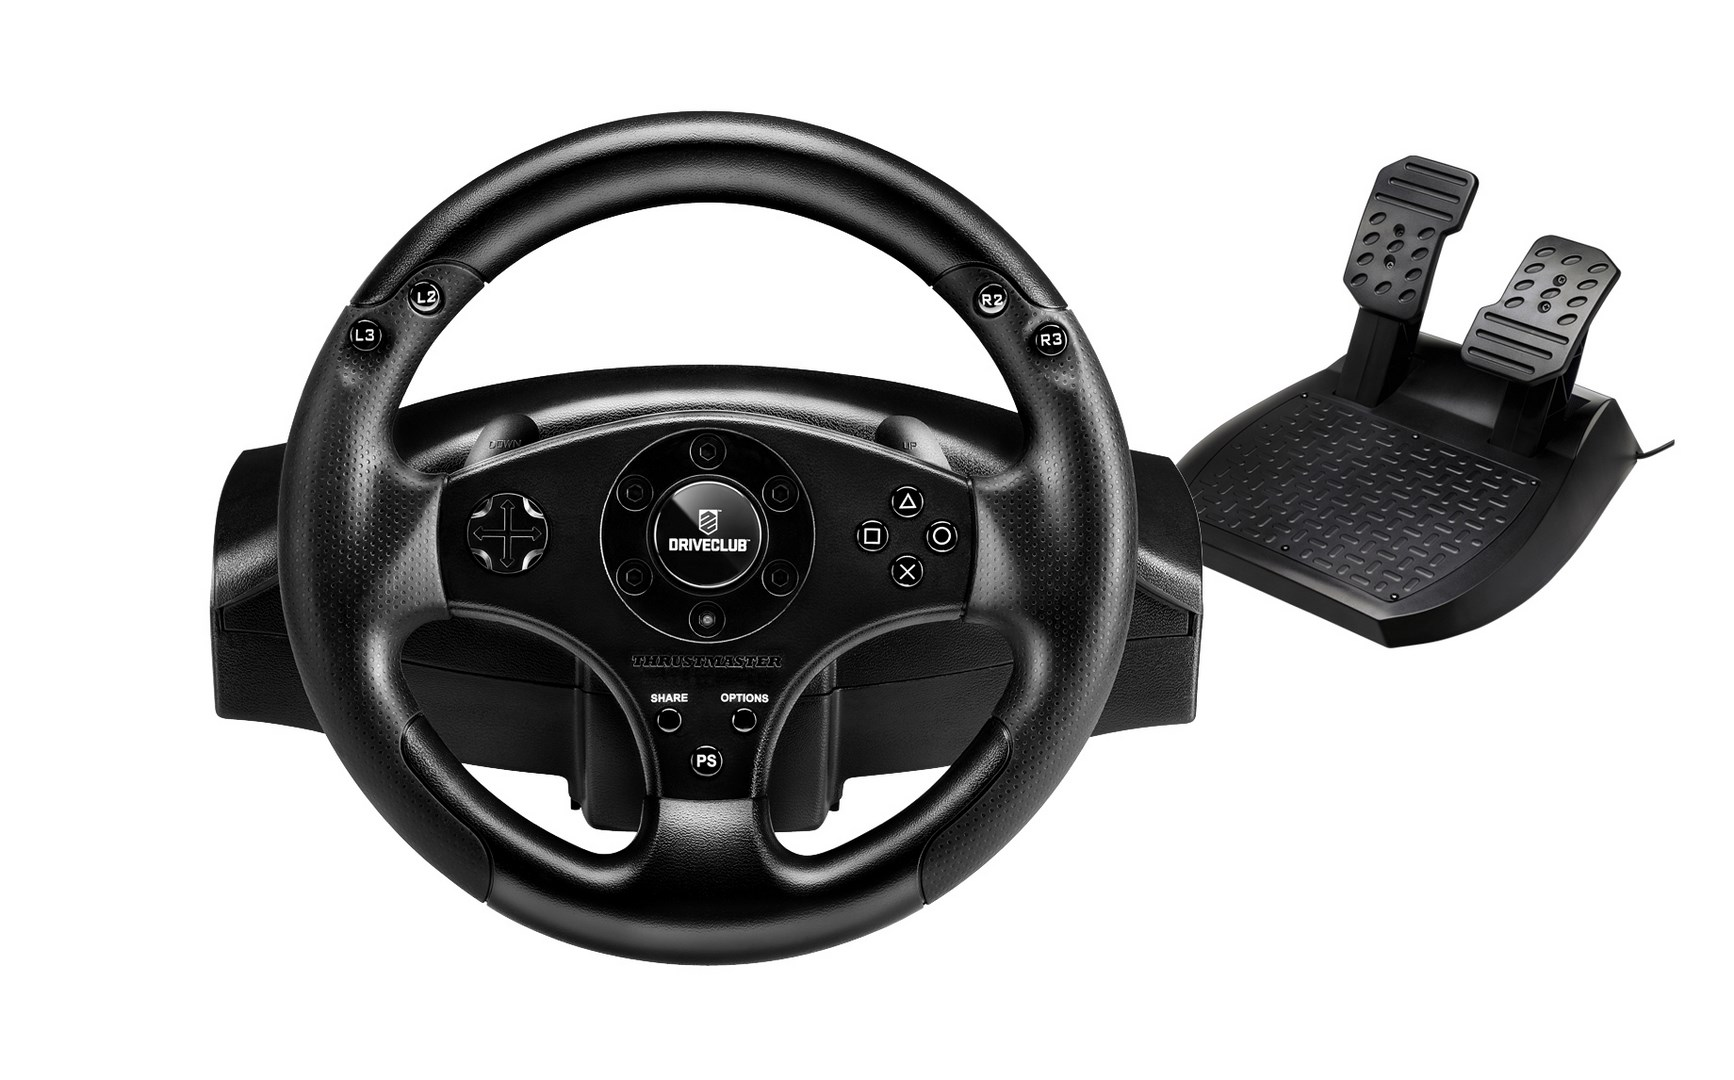 First official PS4 racing wheel announced: the Thrustmaster T80 DriveClub Edition